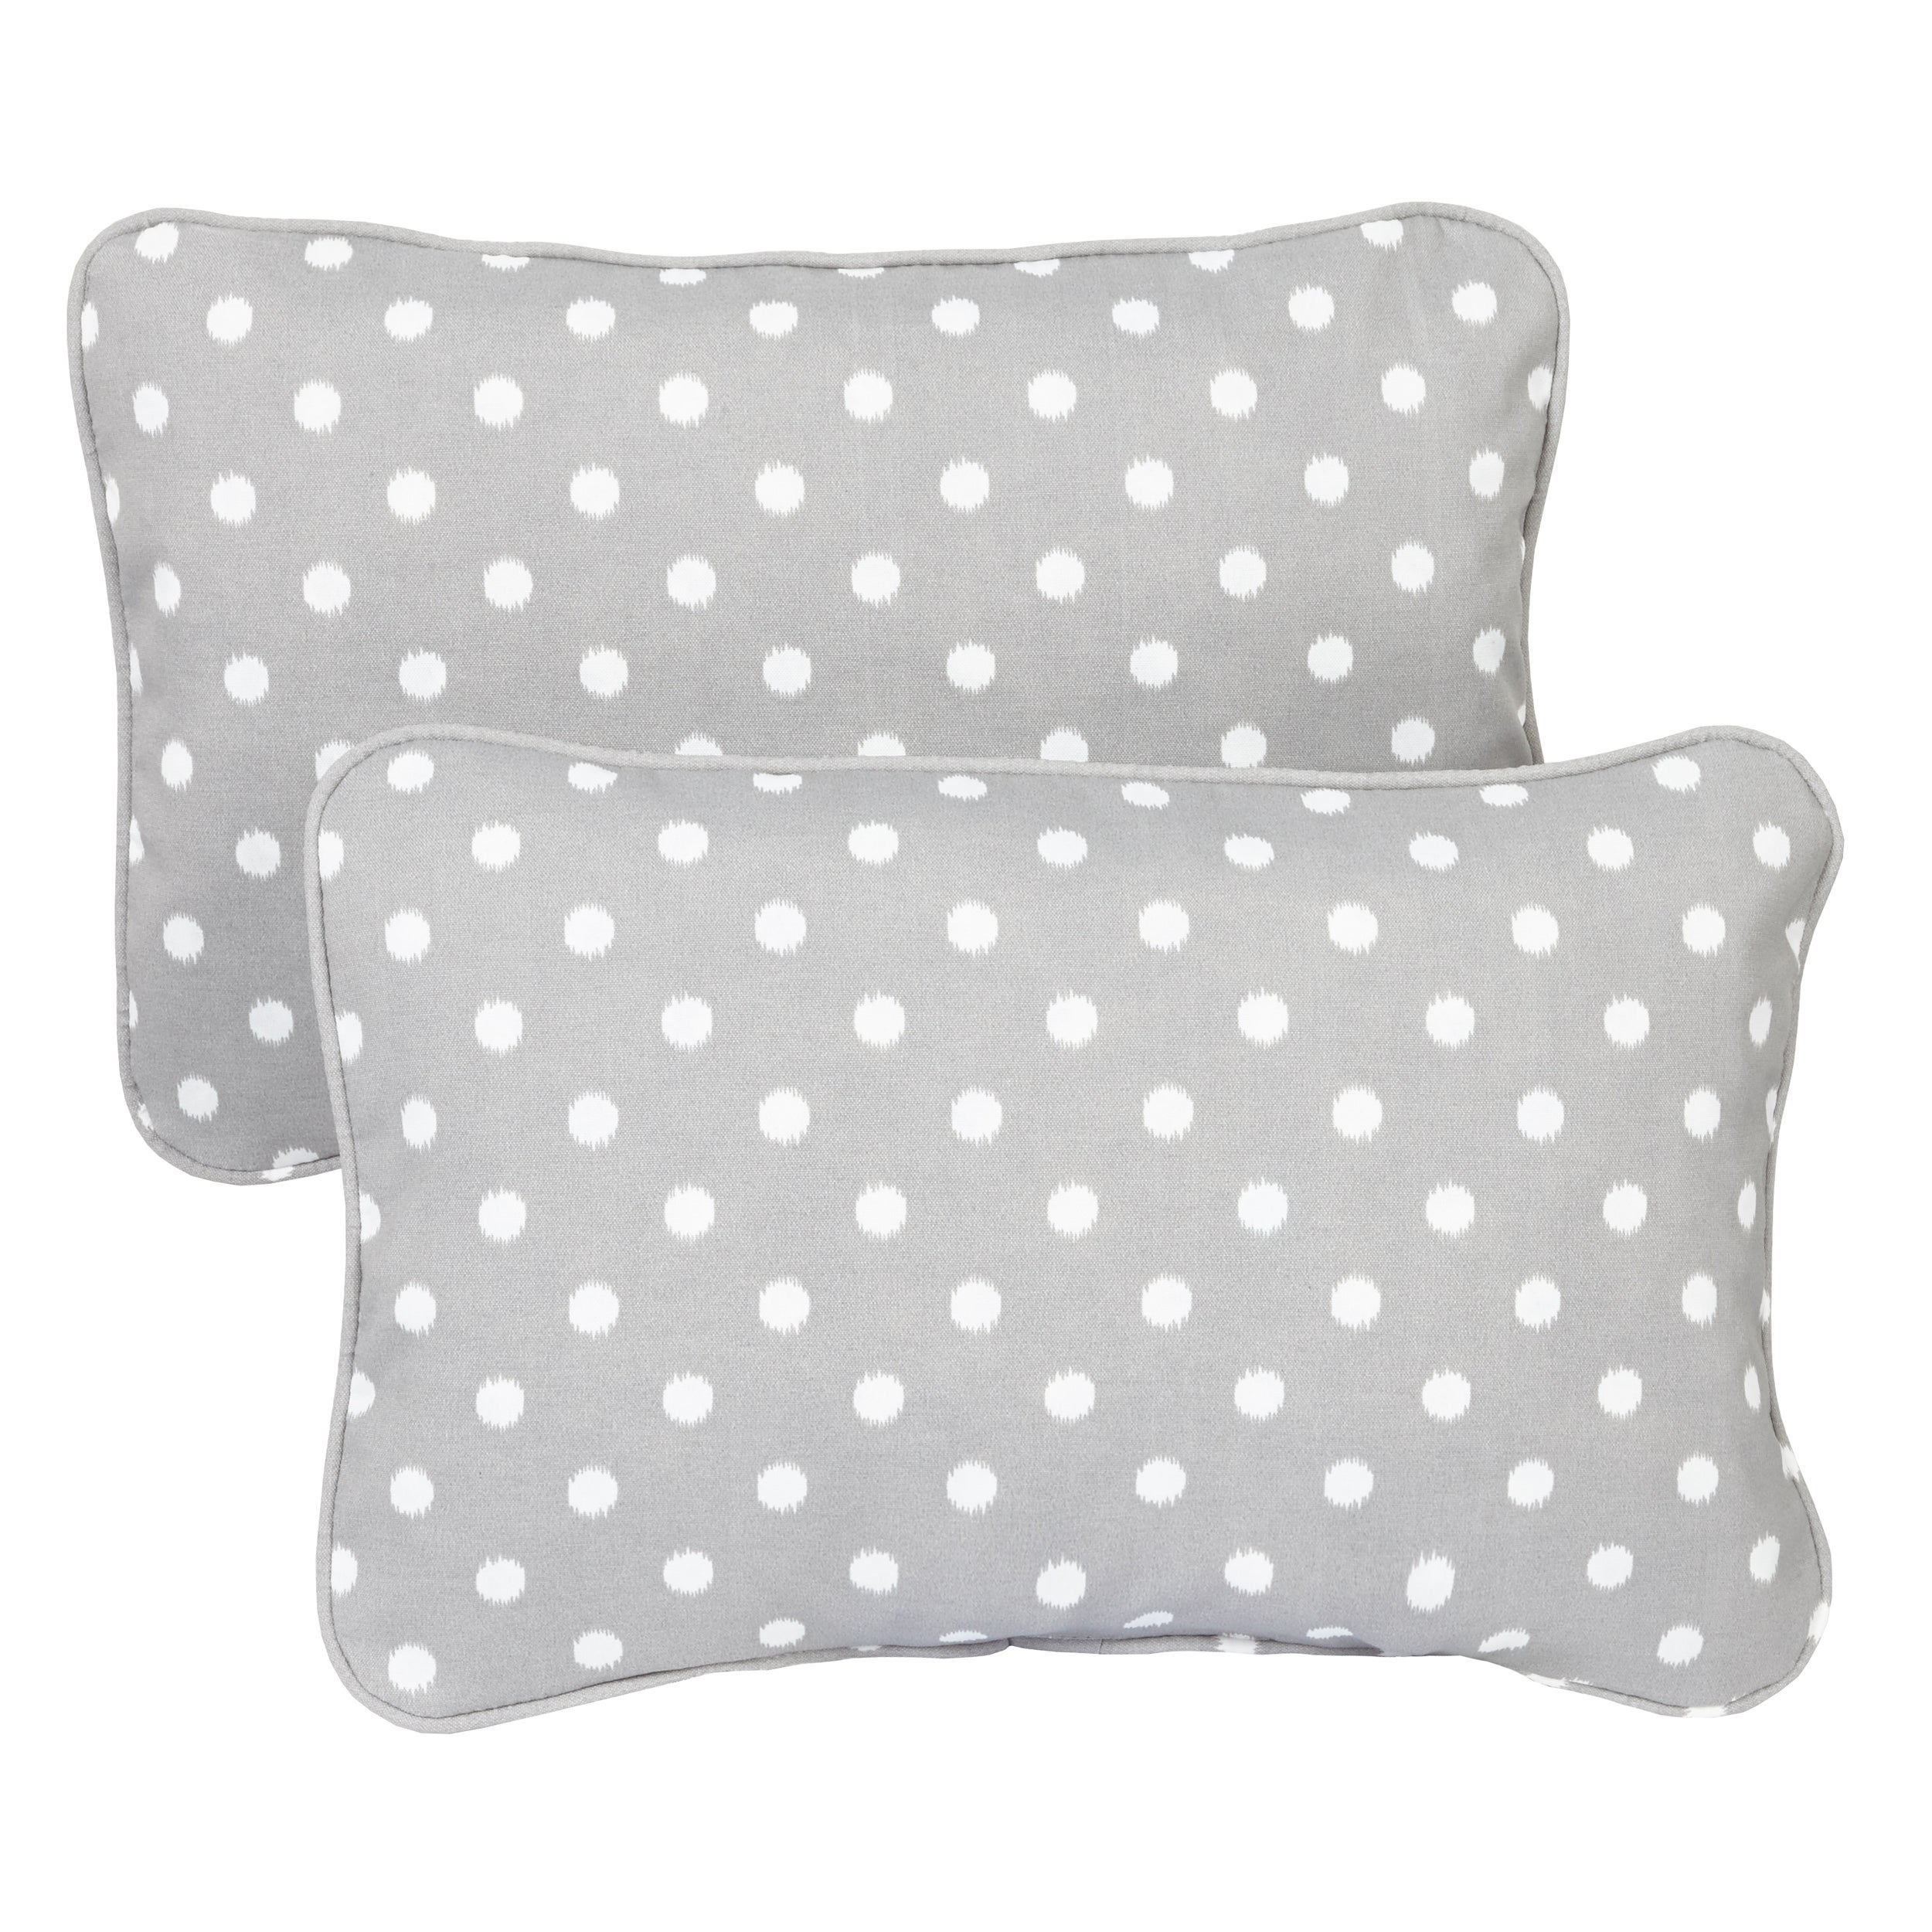 Grey Dots Corded 13 x 20 inch Indoor/ Outdoor Throw Pillows (Set of 2) at Sears.com